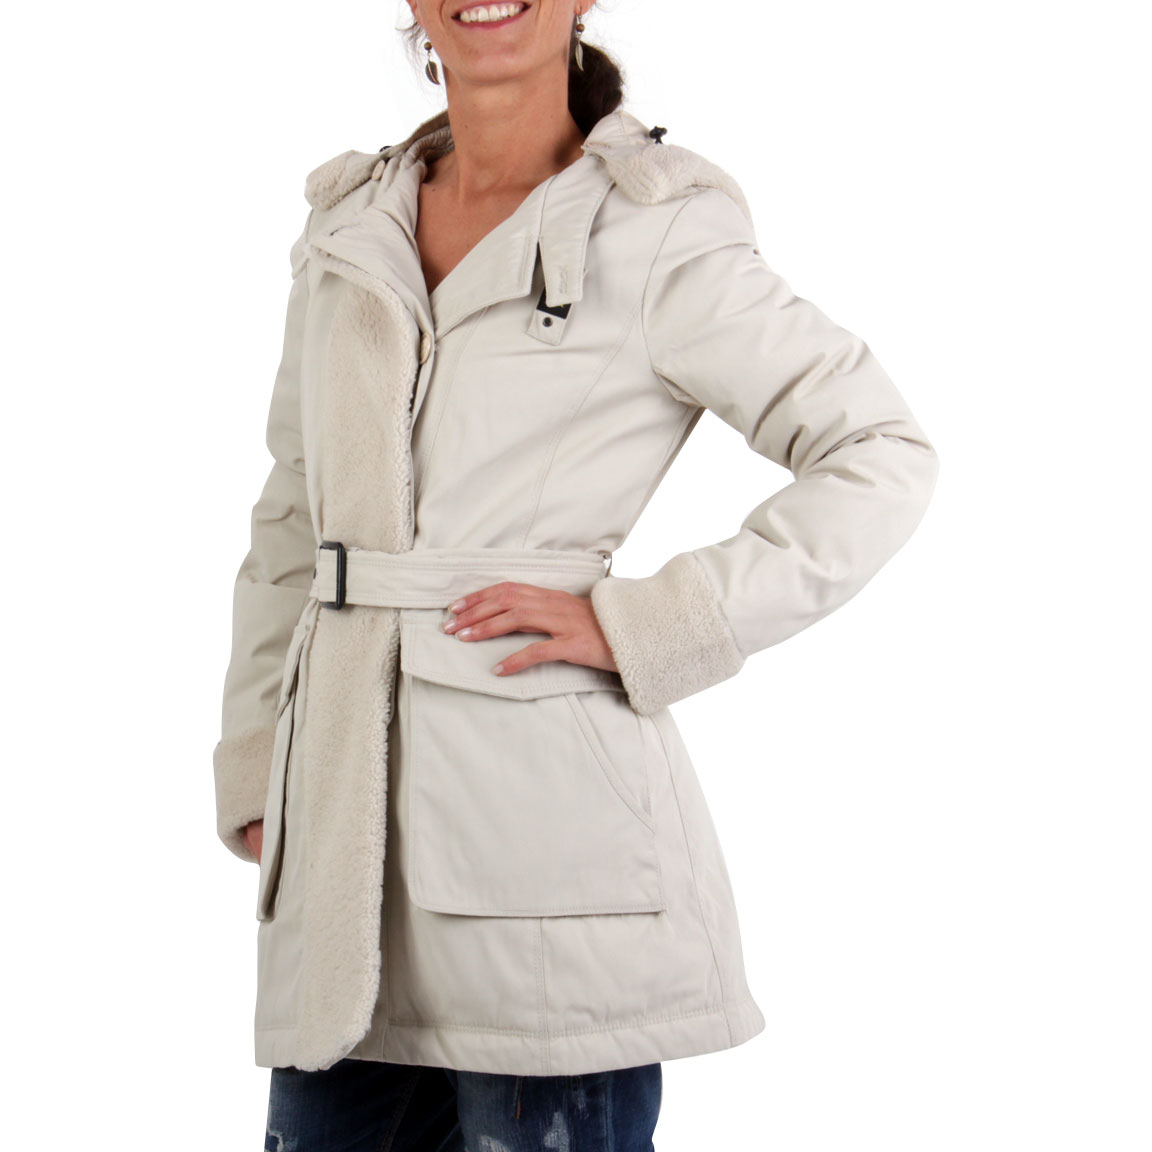 blauer usa damen winter daunen parka mantel jacke beige. Black Bedroom Furniture Sets. Home Design Ideas